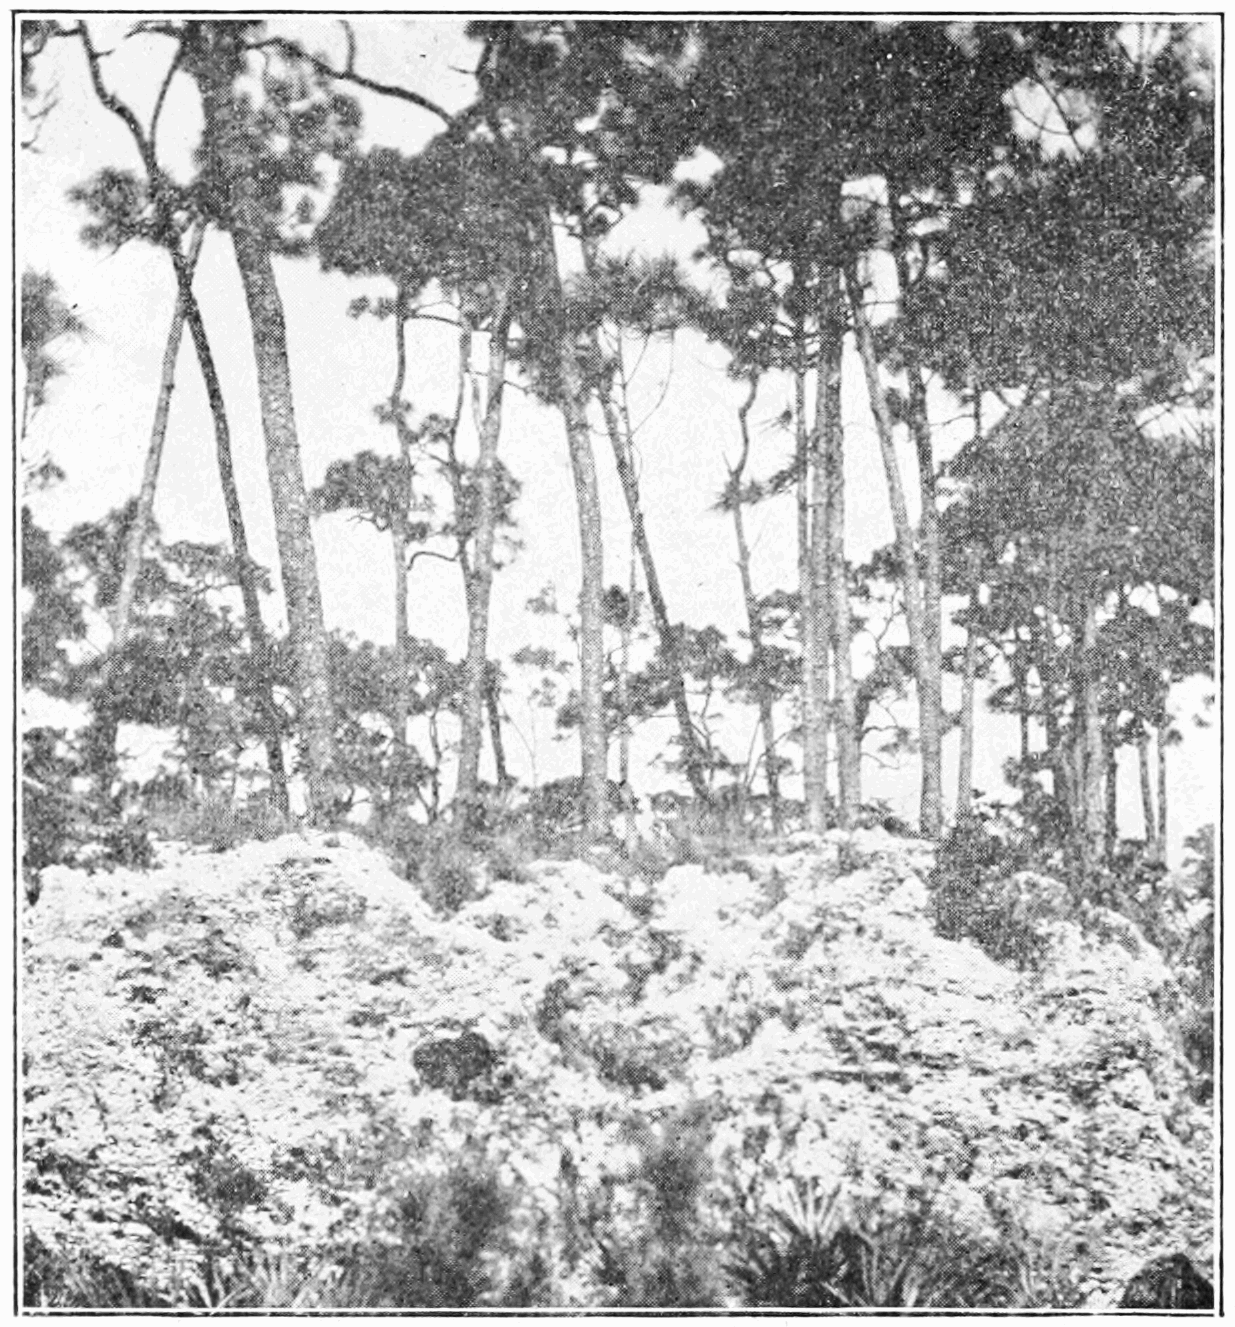 PSM V85 D364 Pure stand of Pinus elliottii with dense undergrowth in Florida.png